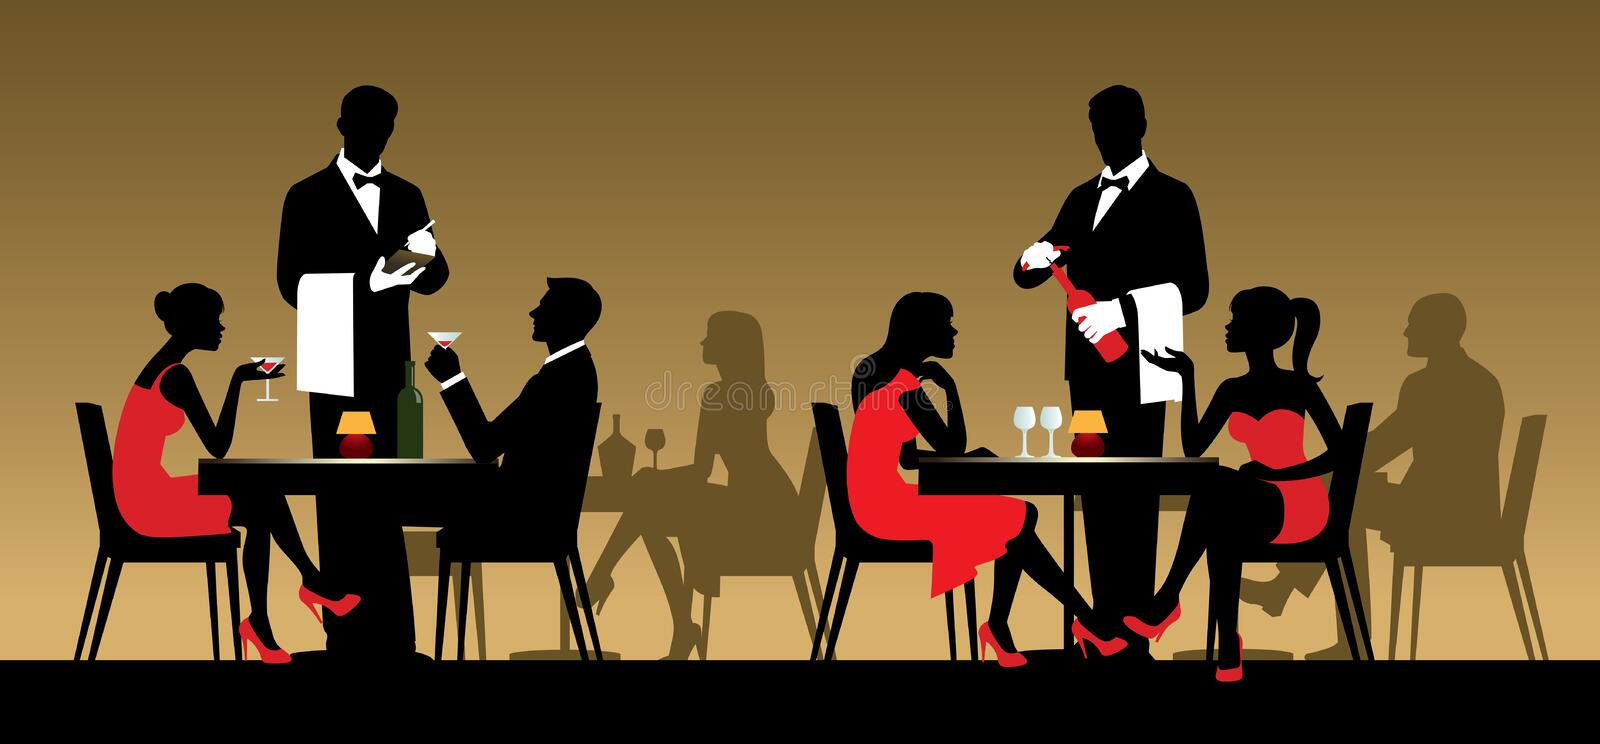 Silhouettes of people sitting at tables in a restaurant or night stock illustration